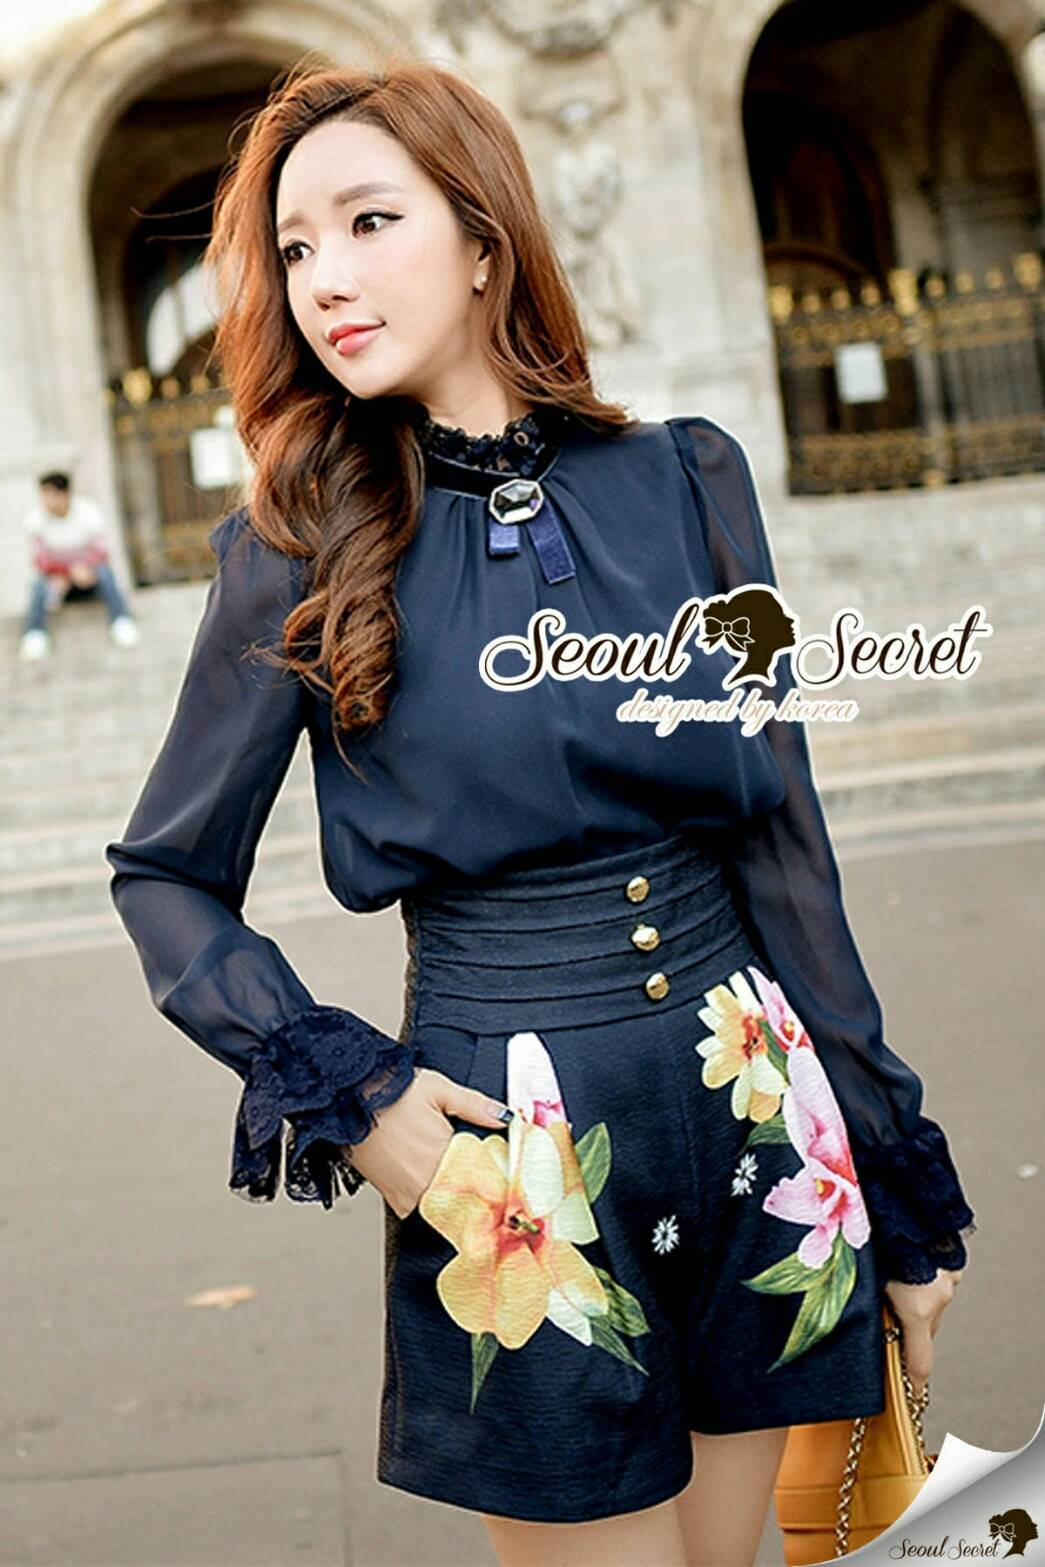 Seoul Secret Say's... Navly Lace Colar Chic Blossom Pants Set